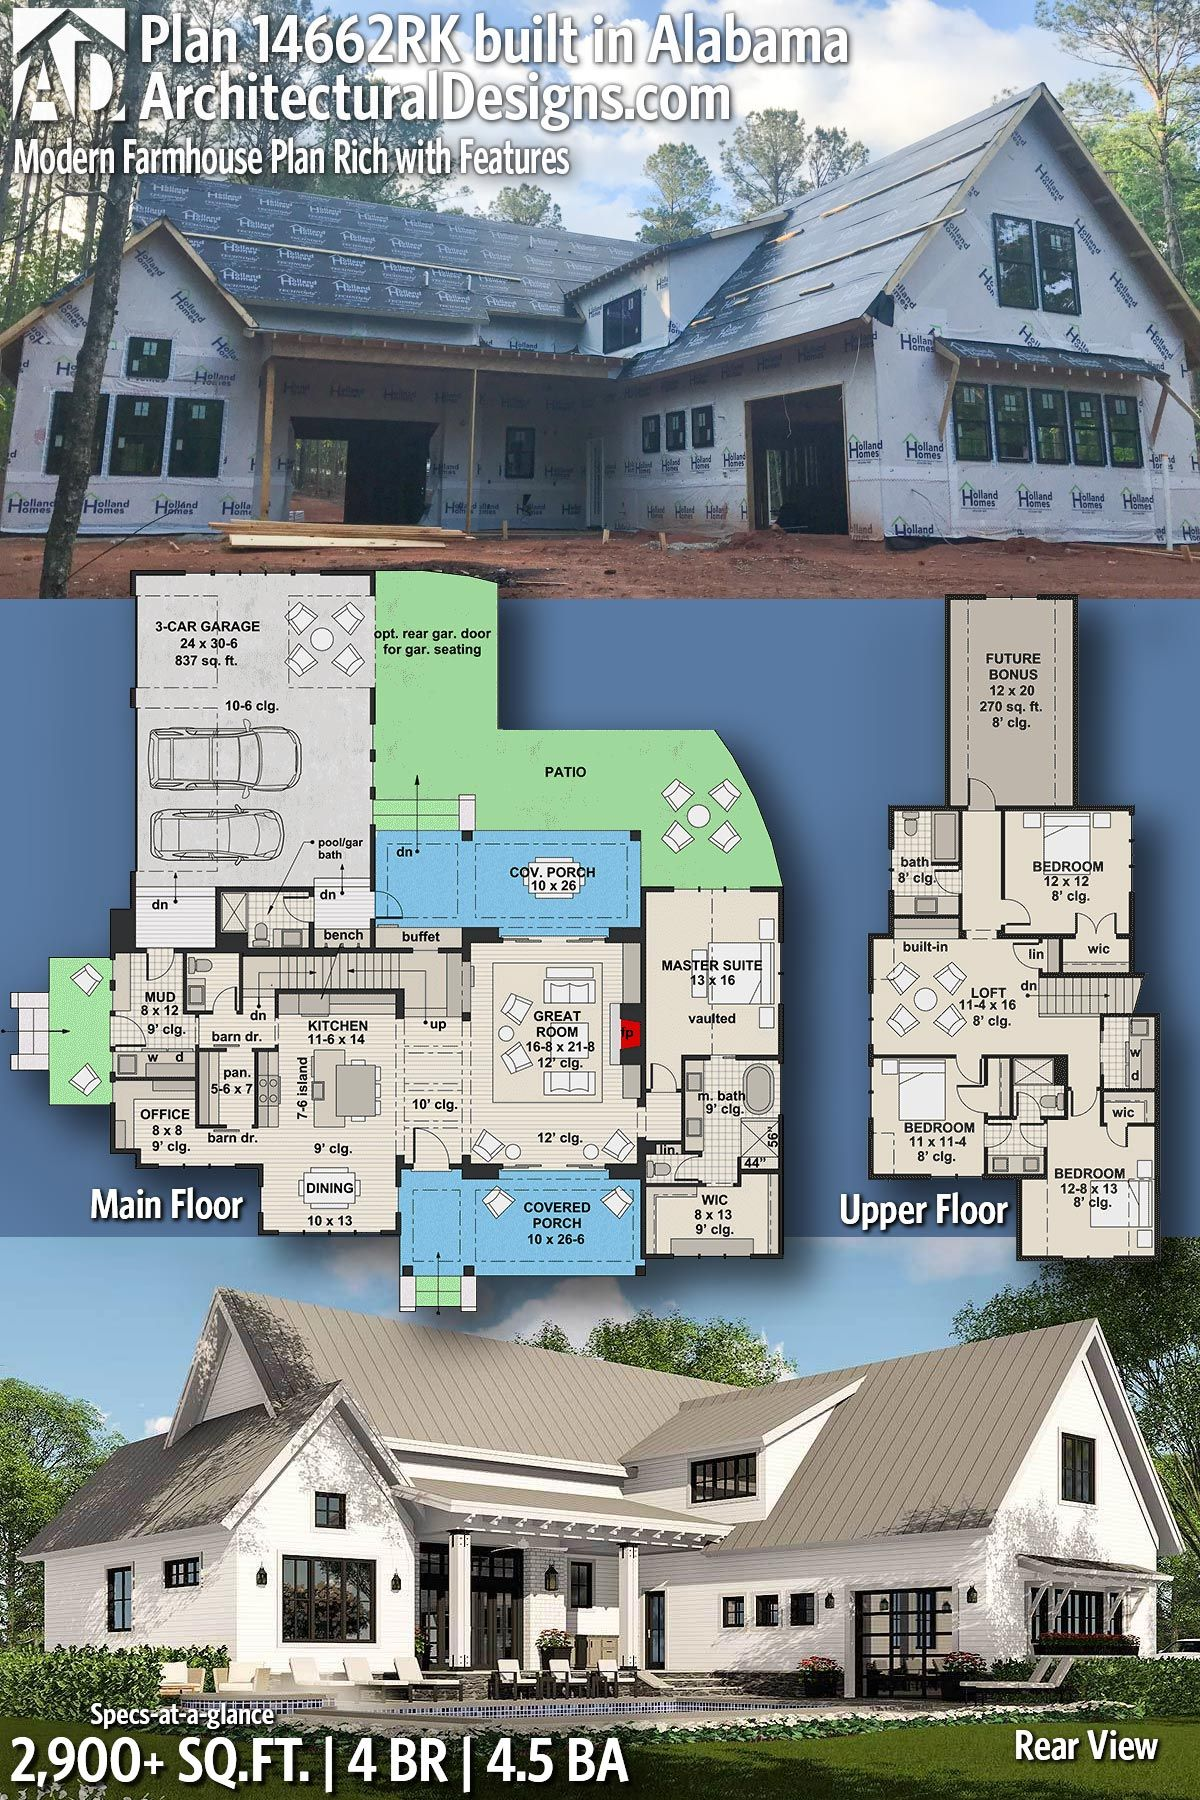 Architectural Designs House Plan 14662RK client built in